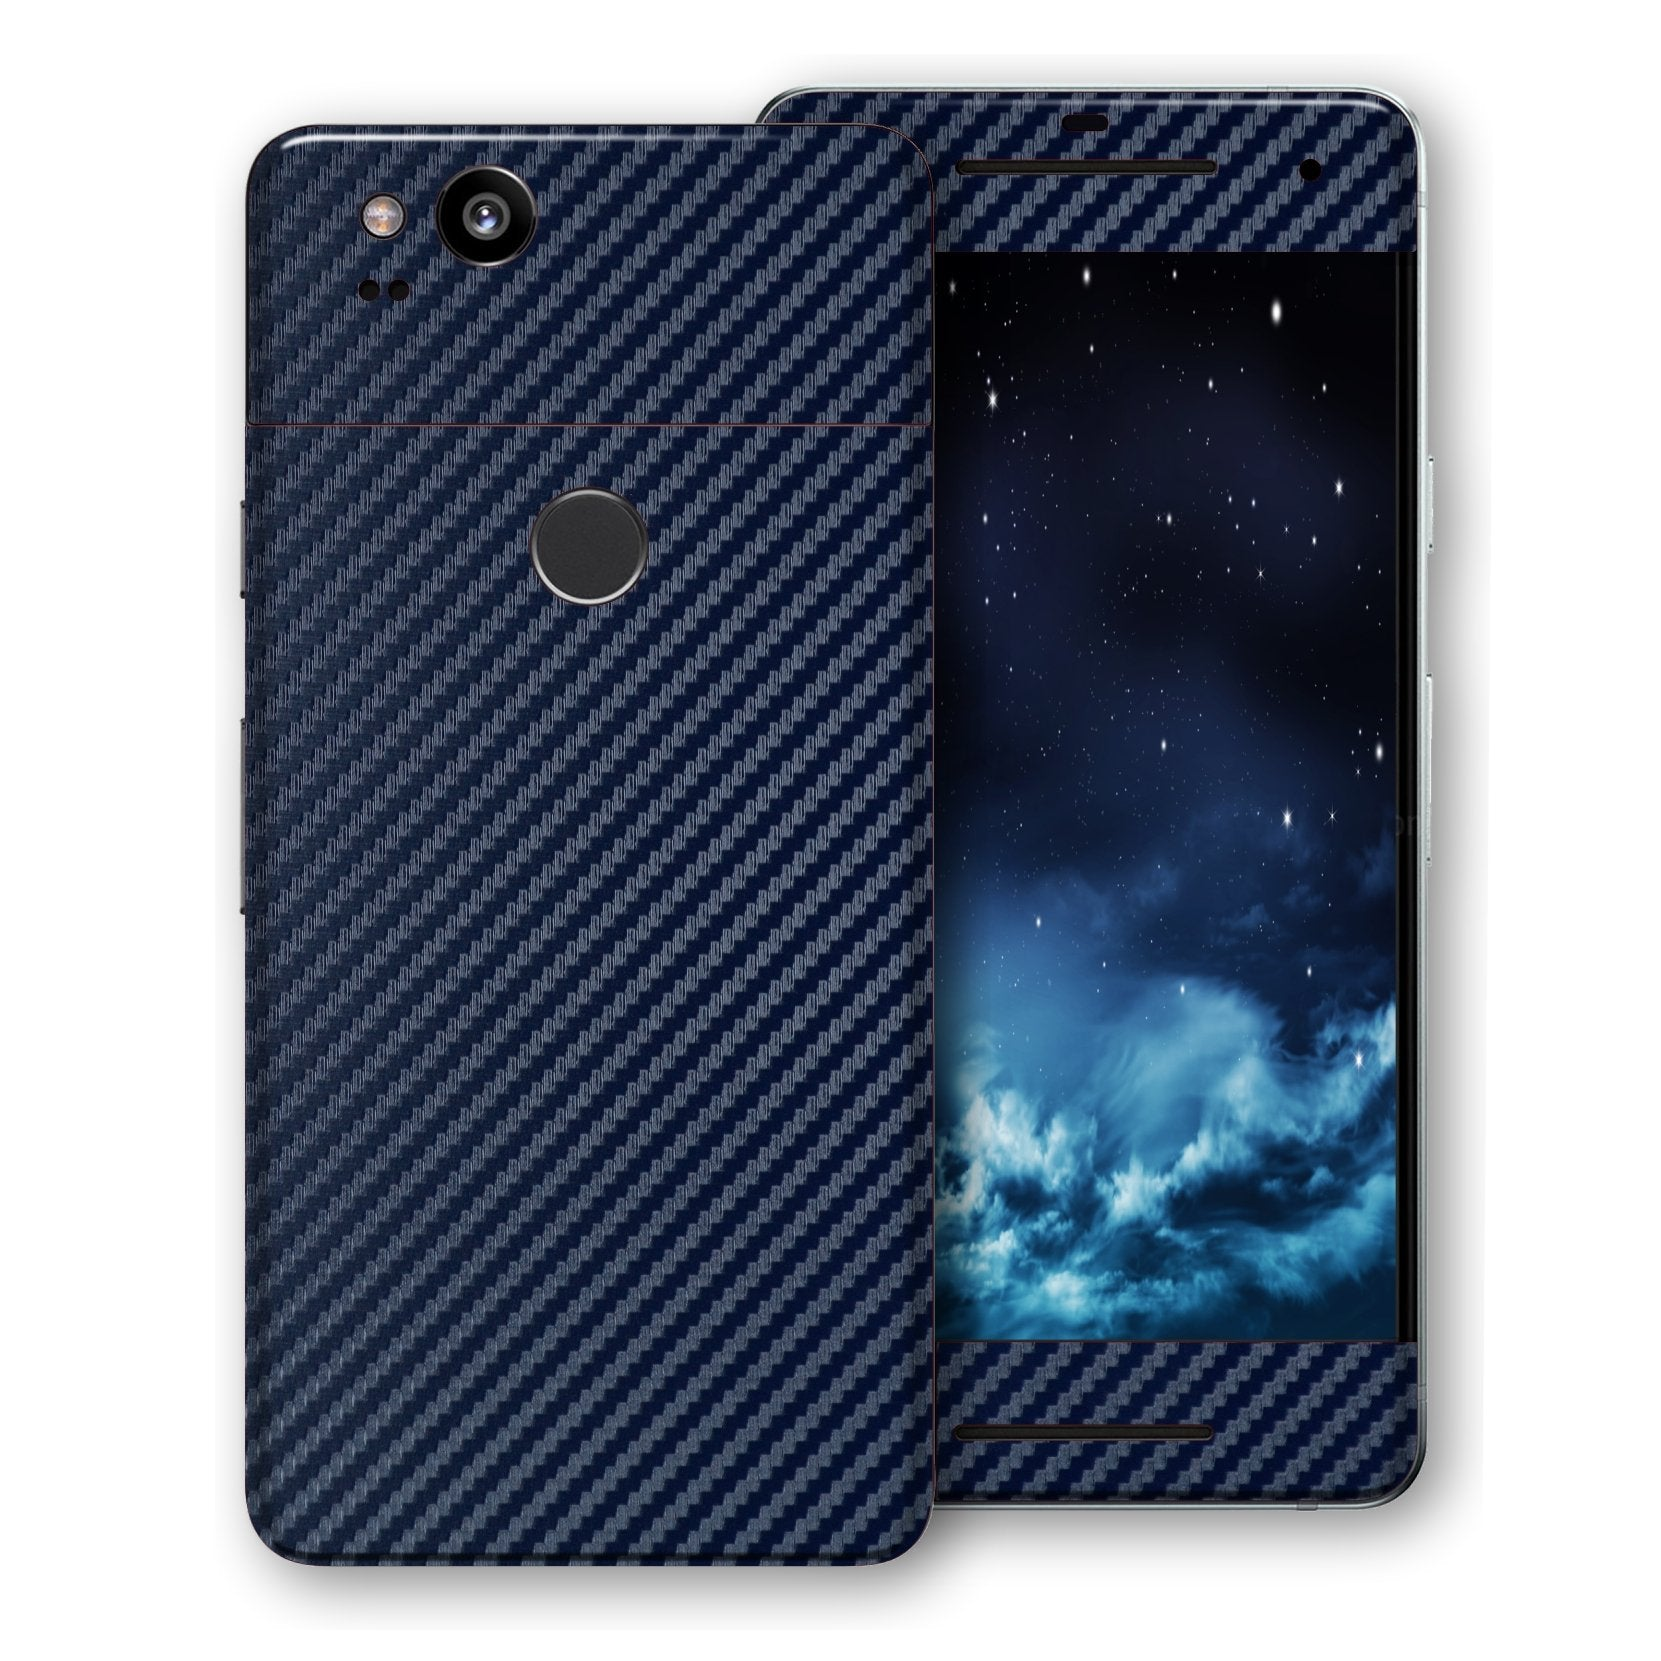 Google Pixel 2 3D Textured Navy Blue Carbon Fibre Fiber Skin, Decal, Wrap, Protector, Cover by EasySkinz | EasySkinz.com